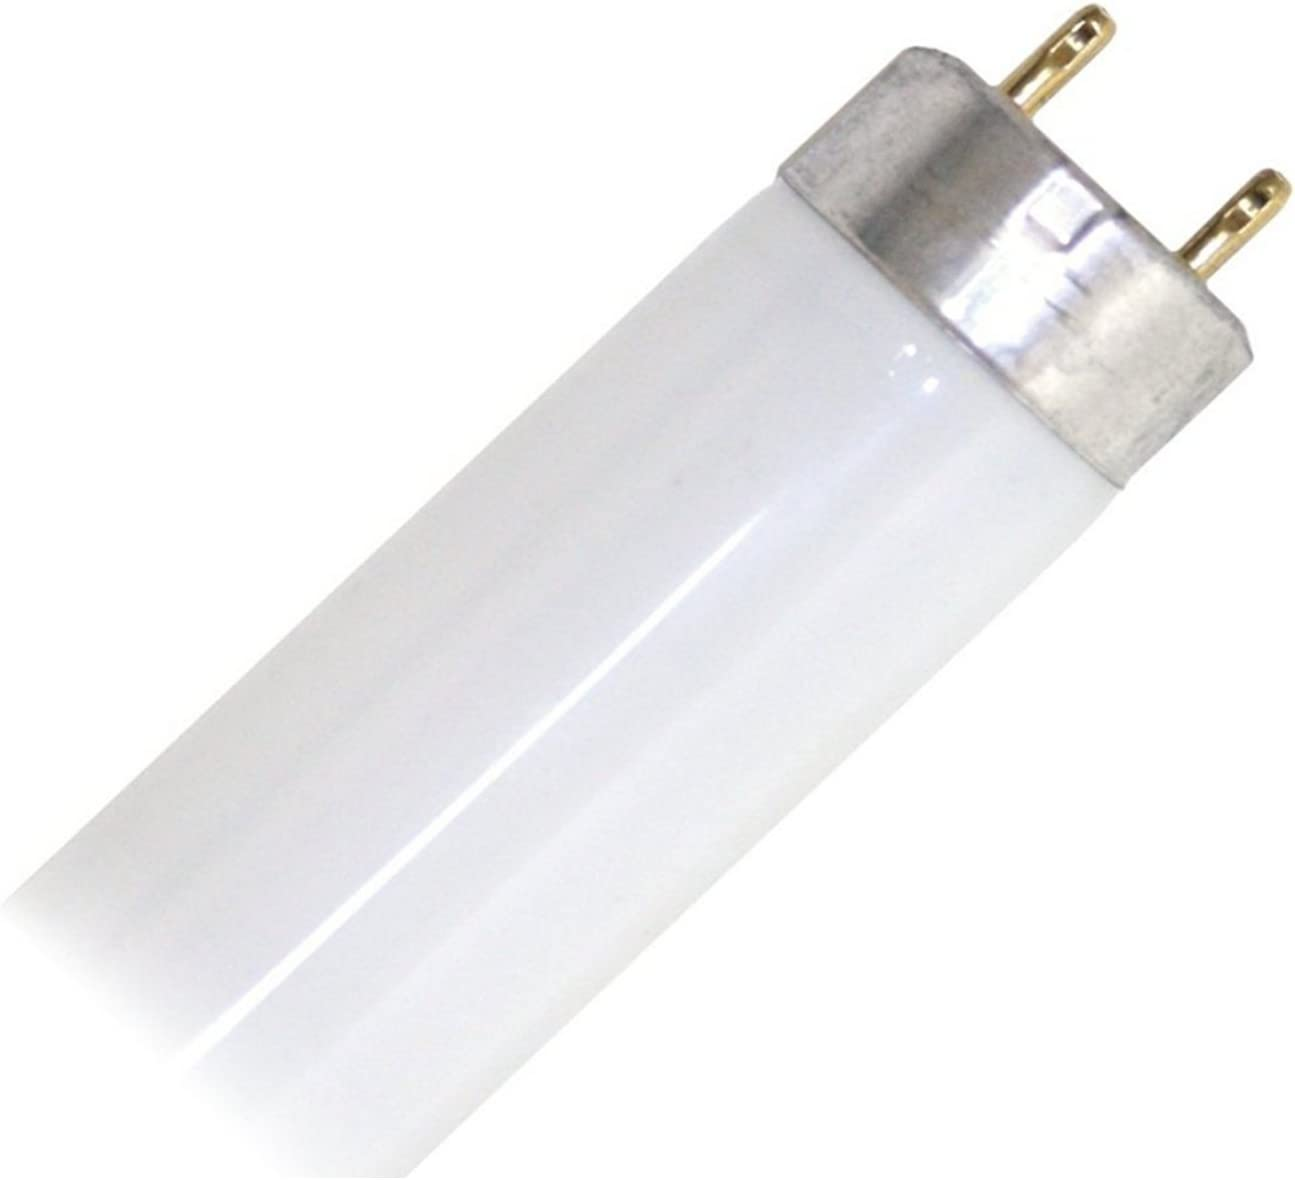 GE F15T12-CW Cool White 15W Fluorescent Tube Lamp bulbs Qty= 1 Box of 24